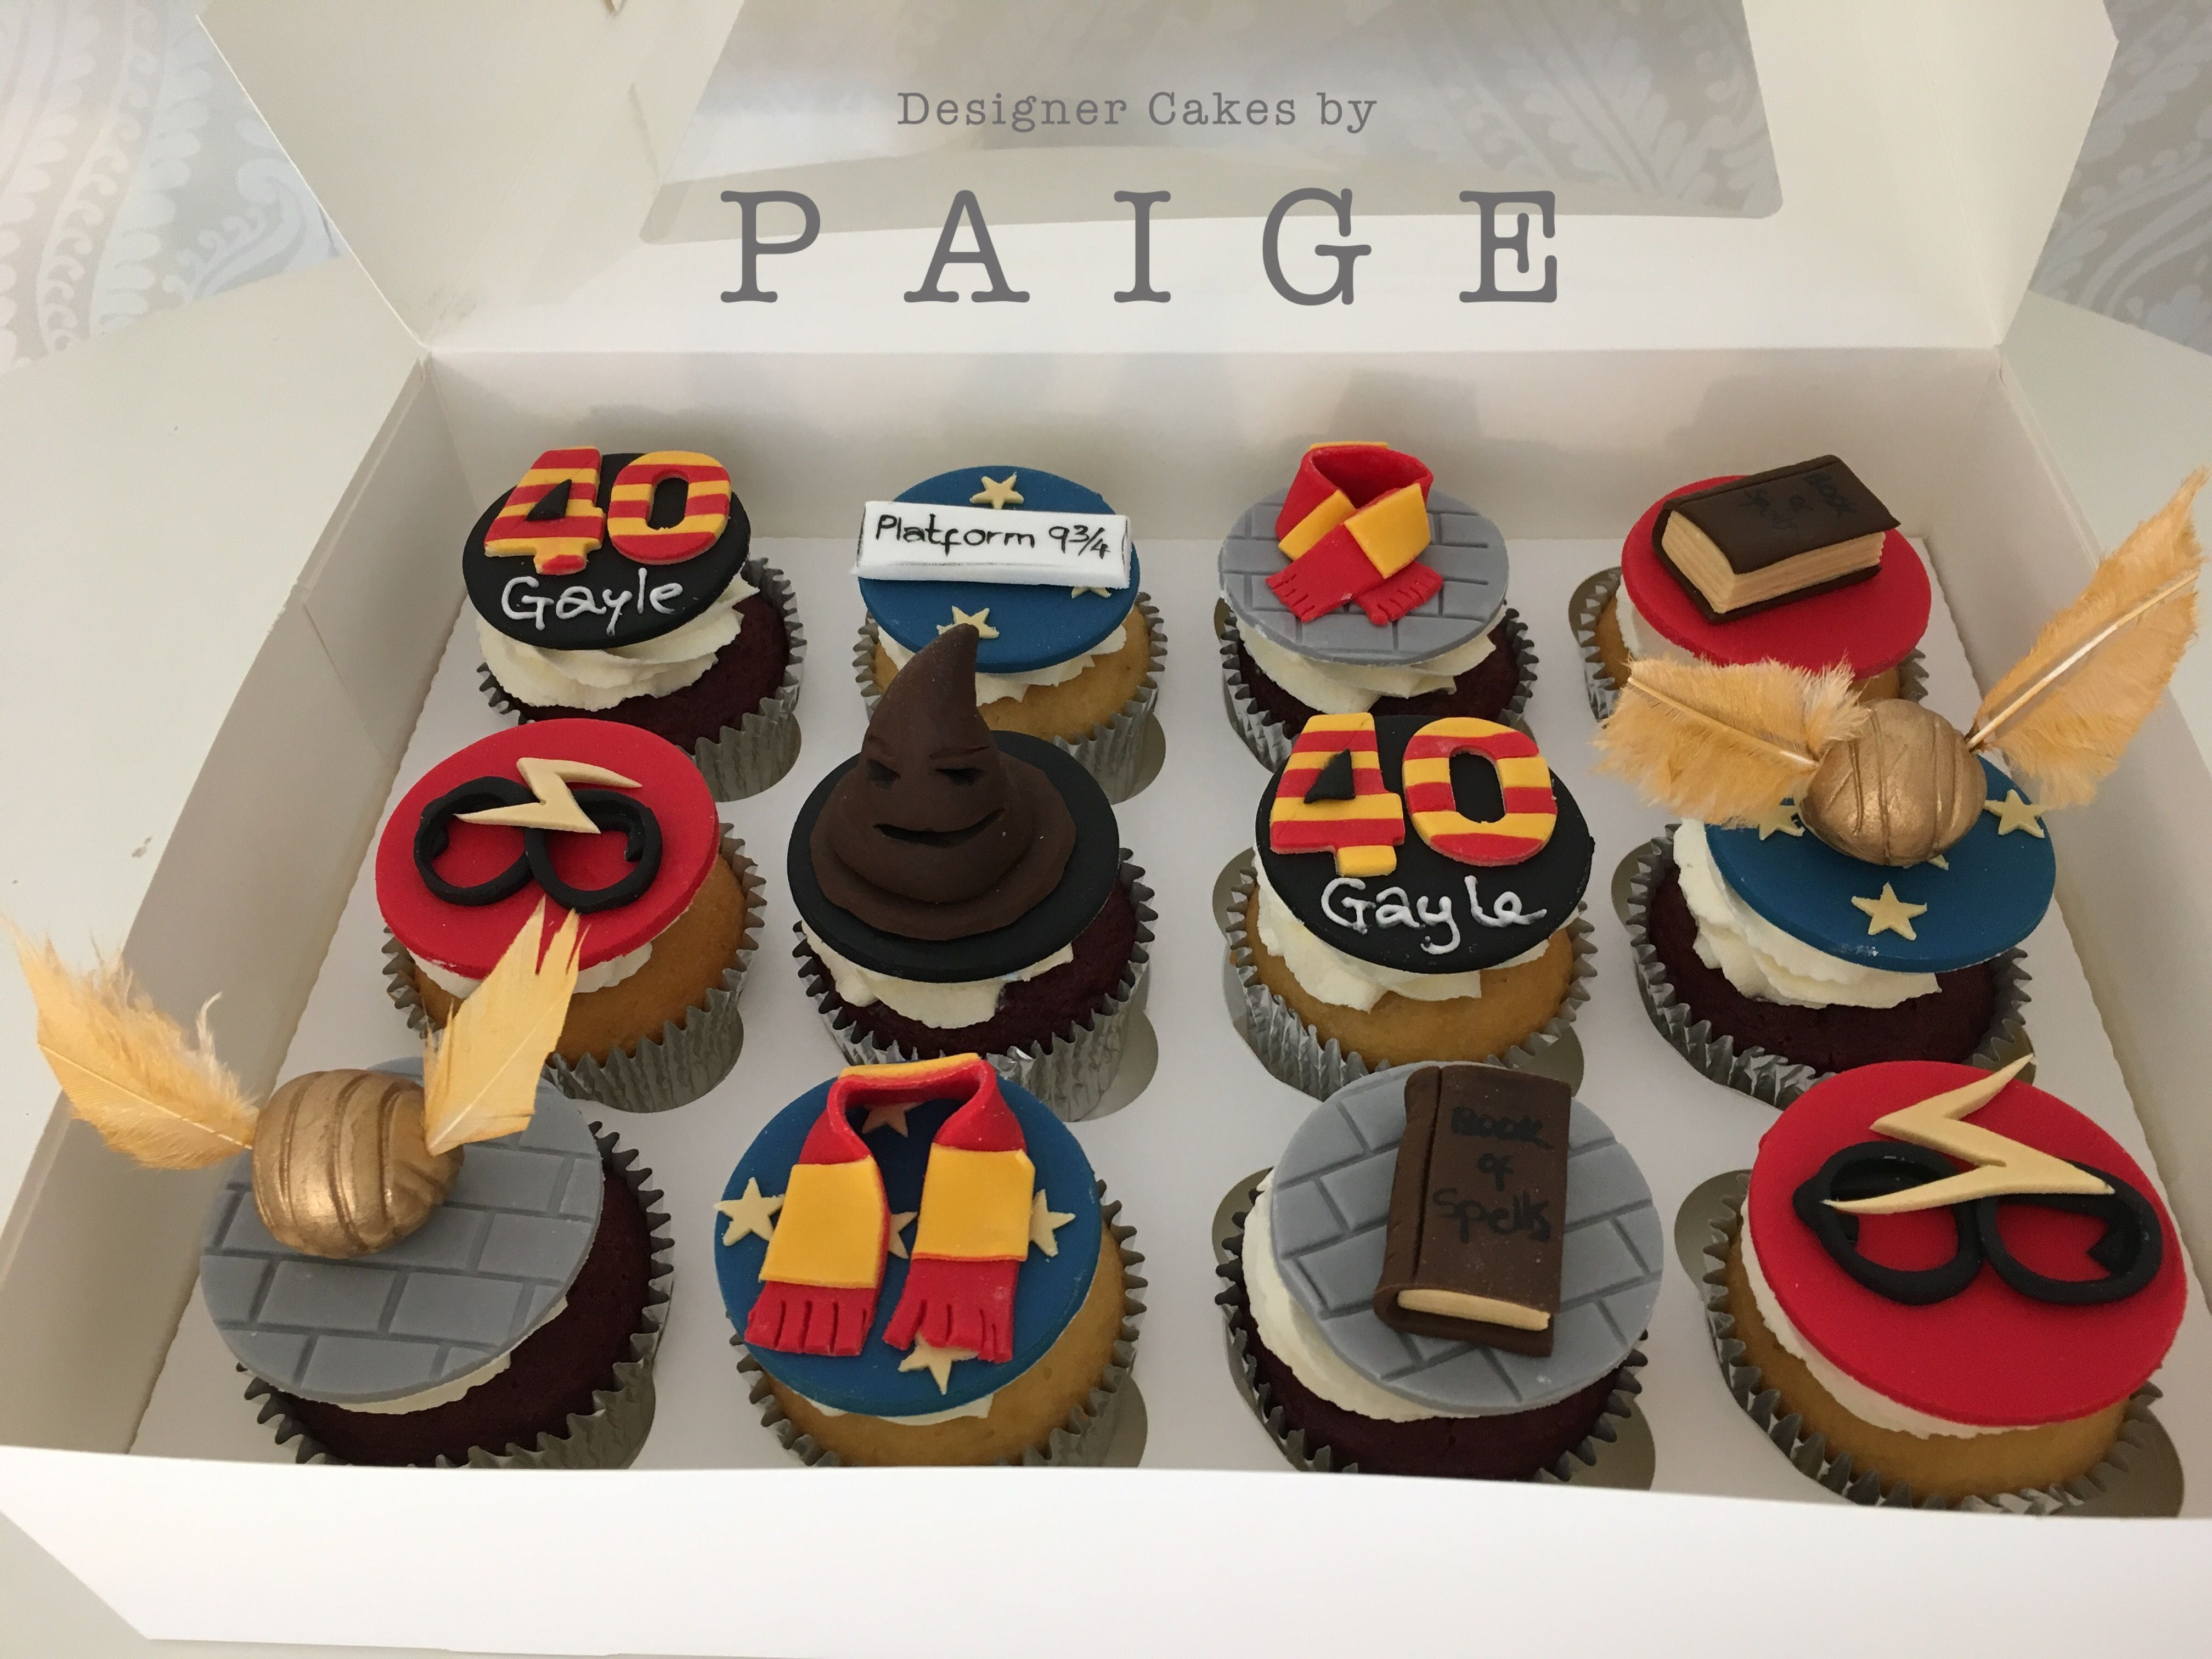 Harry Potter Themed 40th Birthday Cupcakes Cake Designs 40th Birthday Cupcakes Birthday Cupcakes